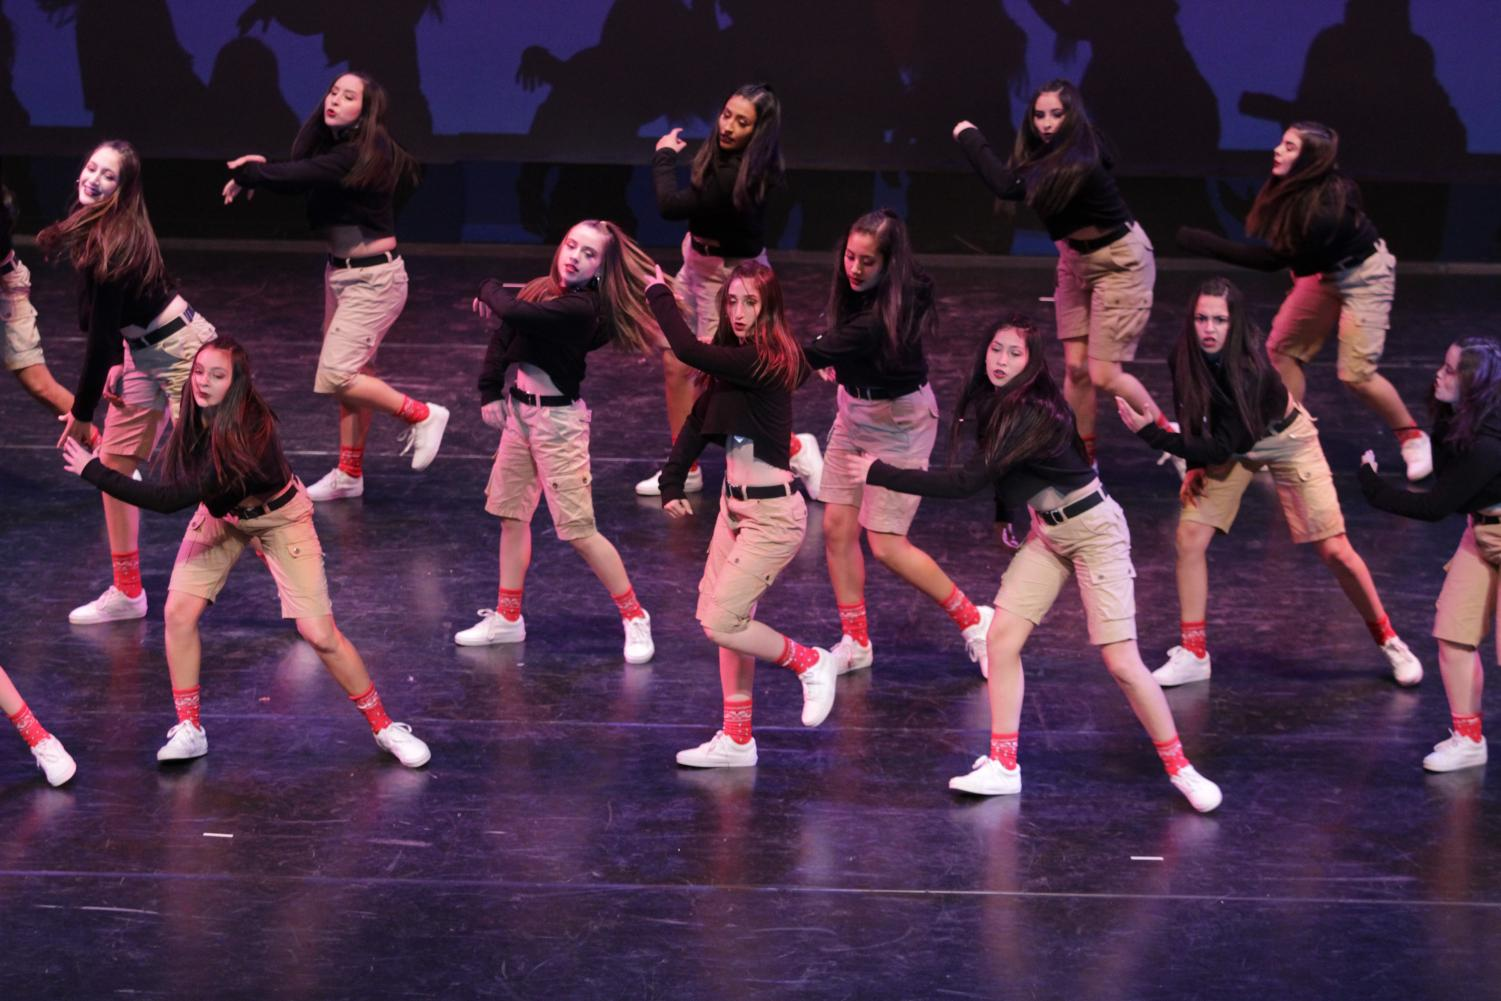 A+member+of+the+Downey+High+School+dance+team%2C+Chloe+Gonzales%2C10%2C+performs+a+stage+titled+Big+Shot.+%E2%80%9CI+think+it%E2%80%99s+important+because+it+boosts+other+dance+team%E2%80%99s+confidence%2C%E2%80%9D+Gonzales+said.+%E2%80%9CWe+get+to+share+dance+as+a+whole+and+speak+with+one+voice.+So+many+cities+are+coming+together+to+share+their+passion+of+dance+and+we+all+get+to+enjoy+each+other.%E2%80%9D